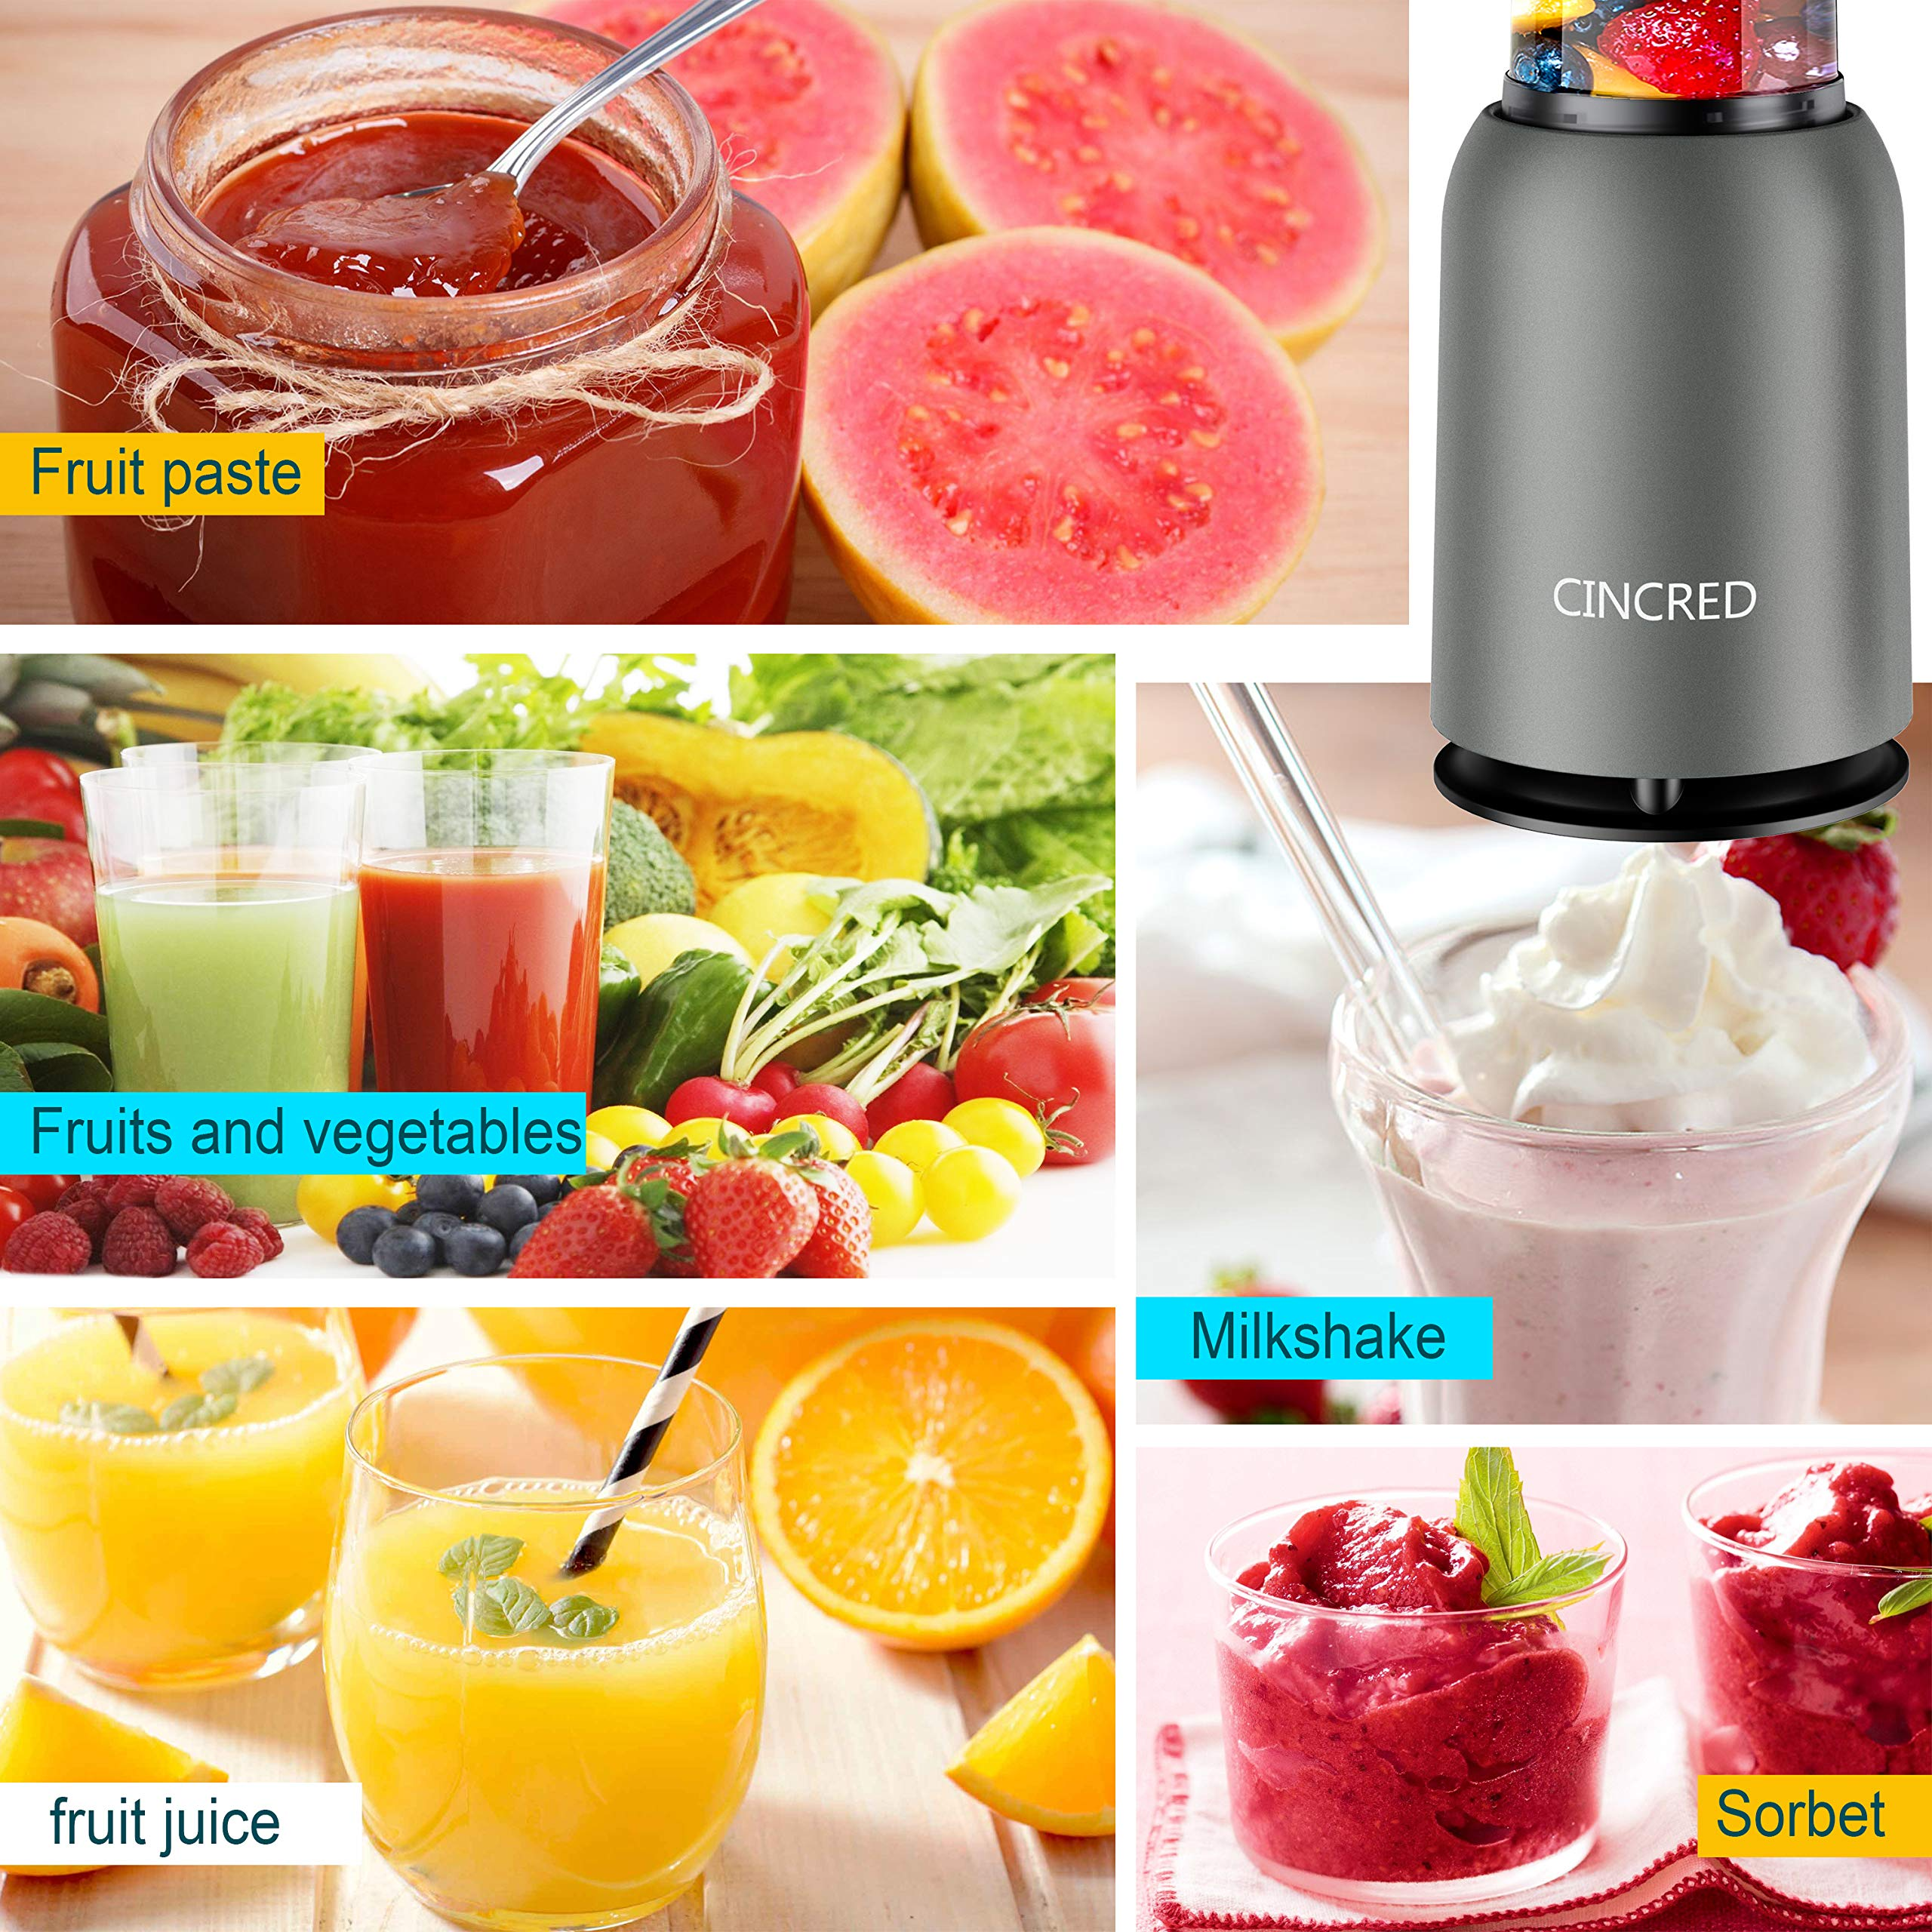 Updated 2019 Version Professional Personal Countertop Blender for Milkshake, Frozen Fruit Vegetables Drinks, Smoothie, Ice, Small Mini Portable Single Food Bullet Blenders Processor Shake Mixer Maker with Cup for Home Kitchen by Cincred (Image #3)